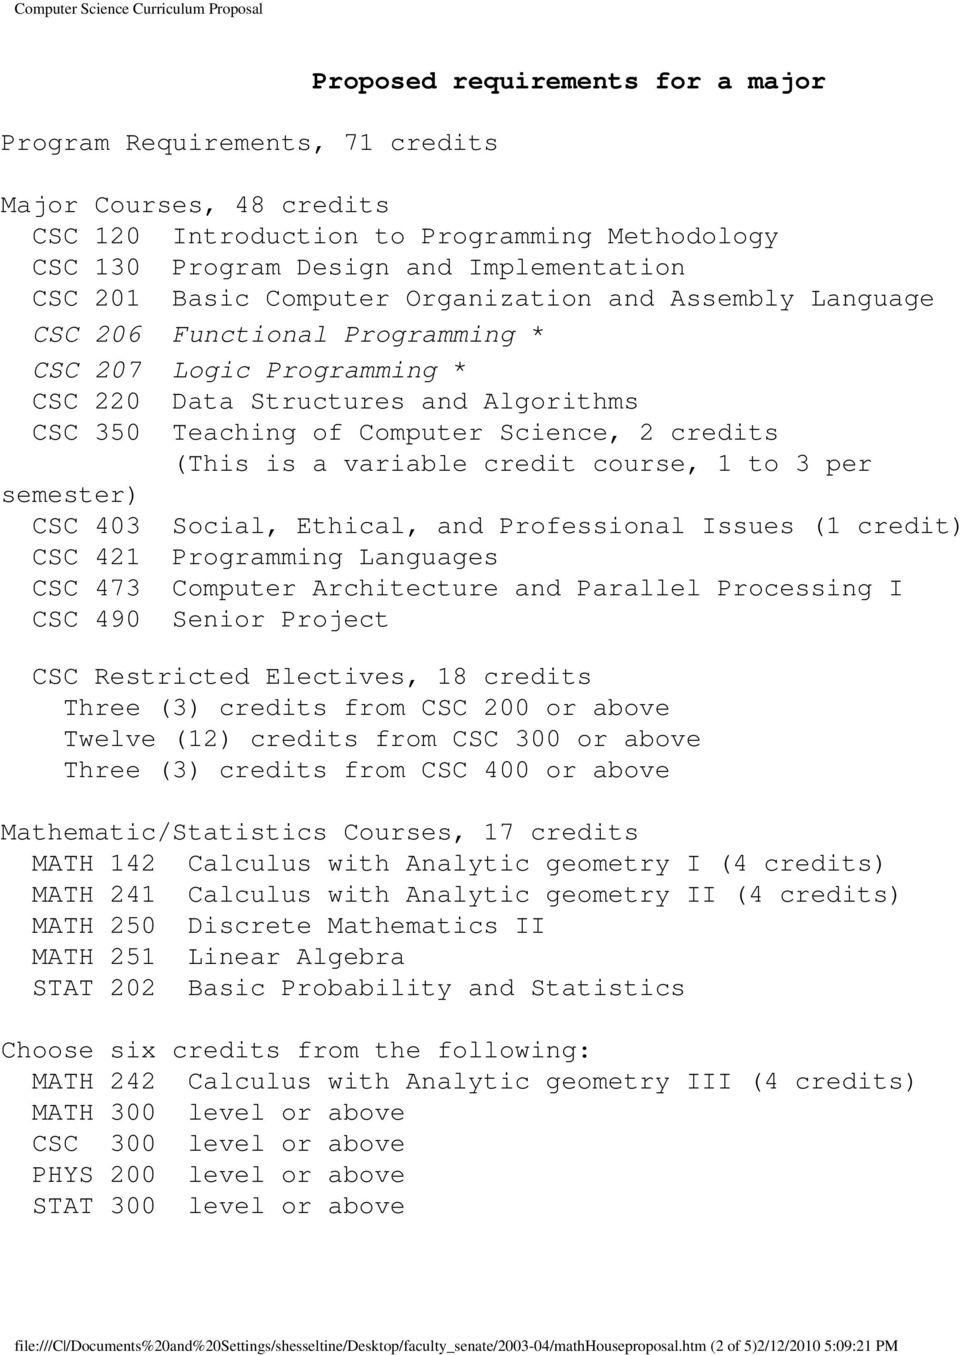 is a variable credit course, 1 to 3 per semester) CSC 403 Social, Ethical, and Professional Issues (1 credit) CSC 421 Programming Languages CSC 473 Computer Architecture and Parallel Processing I CSC